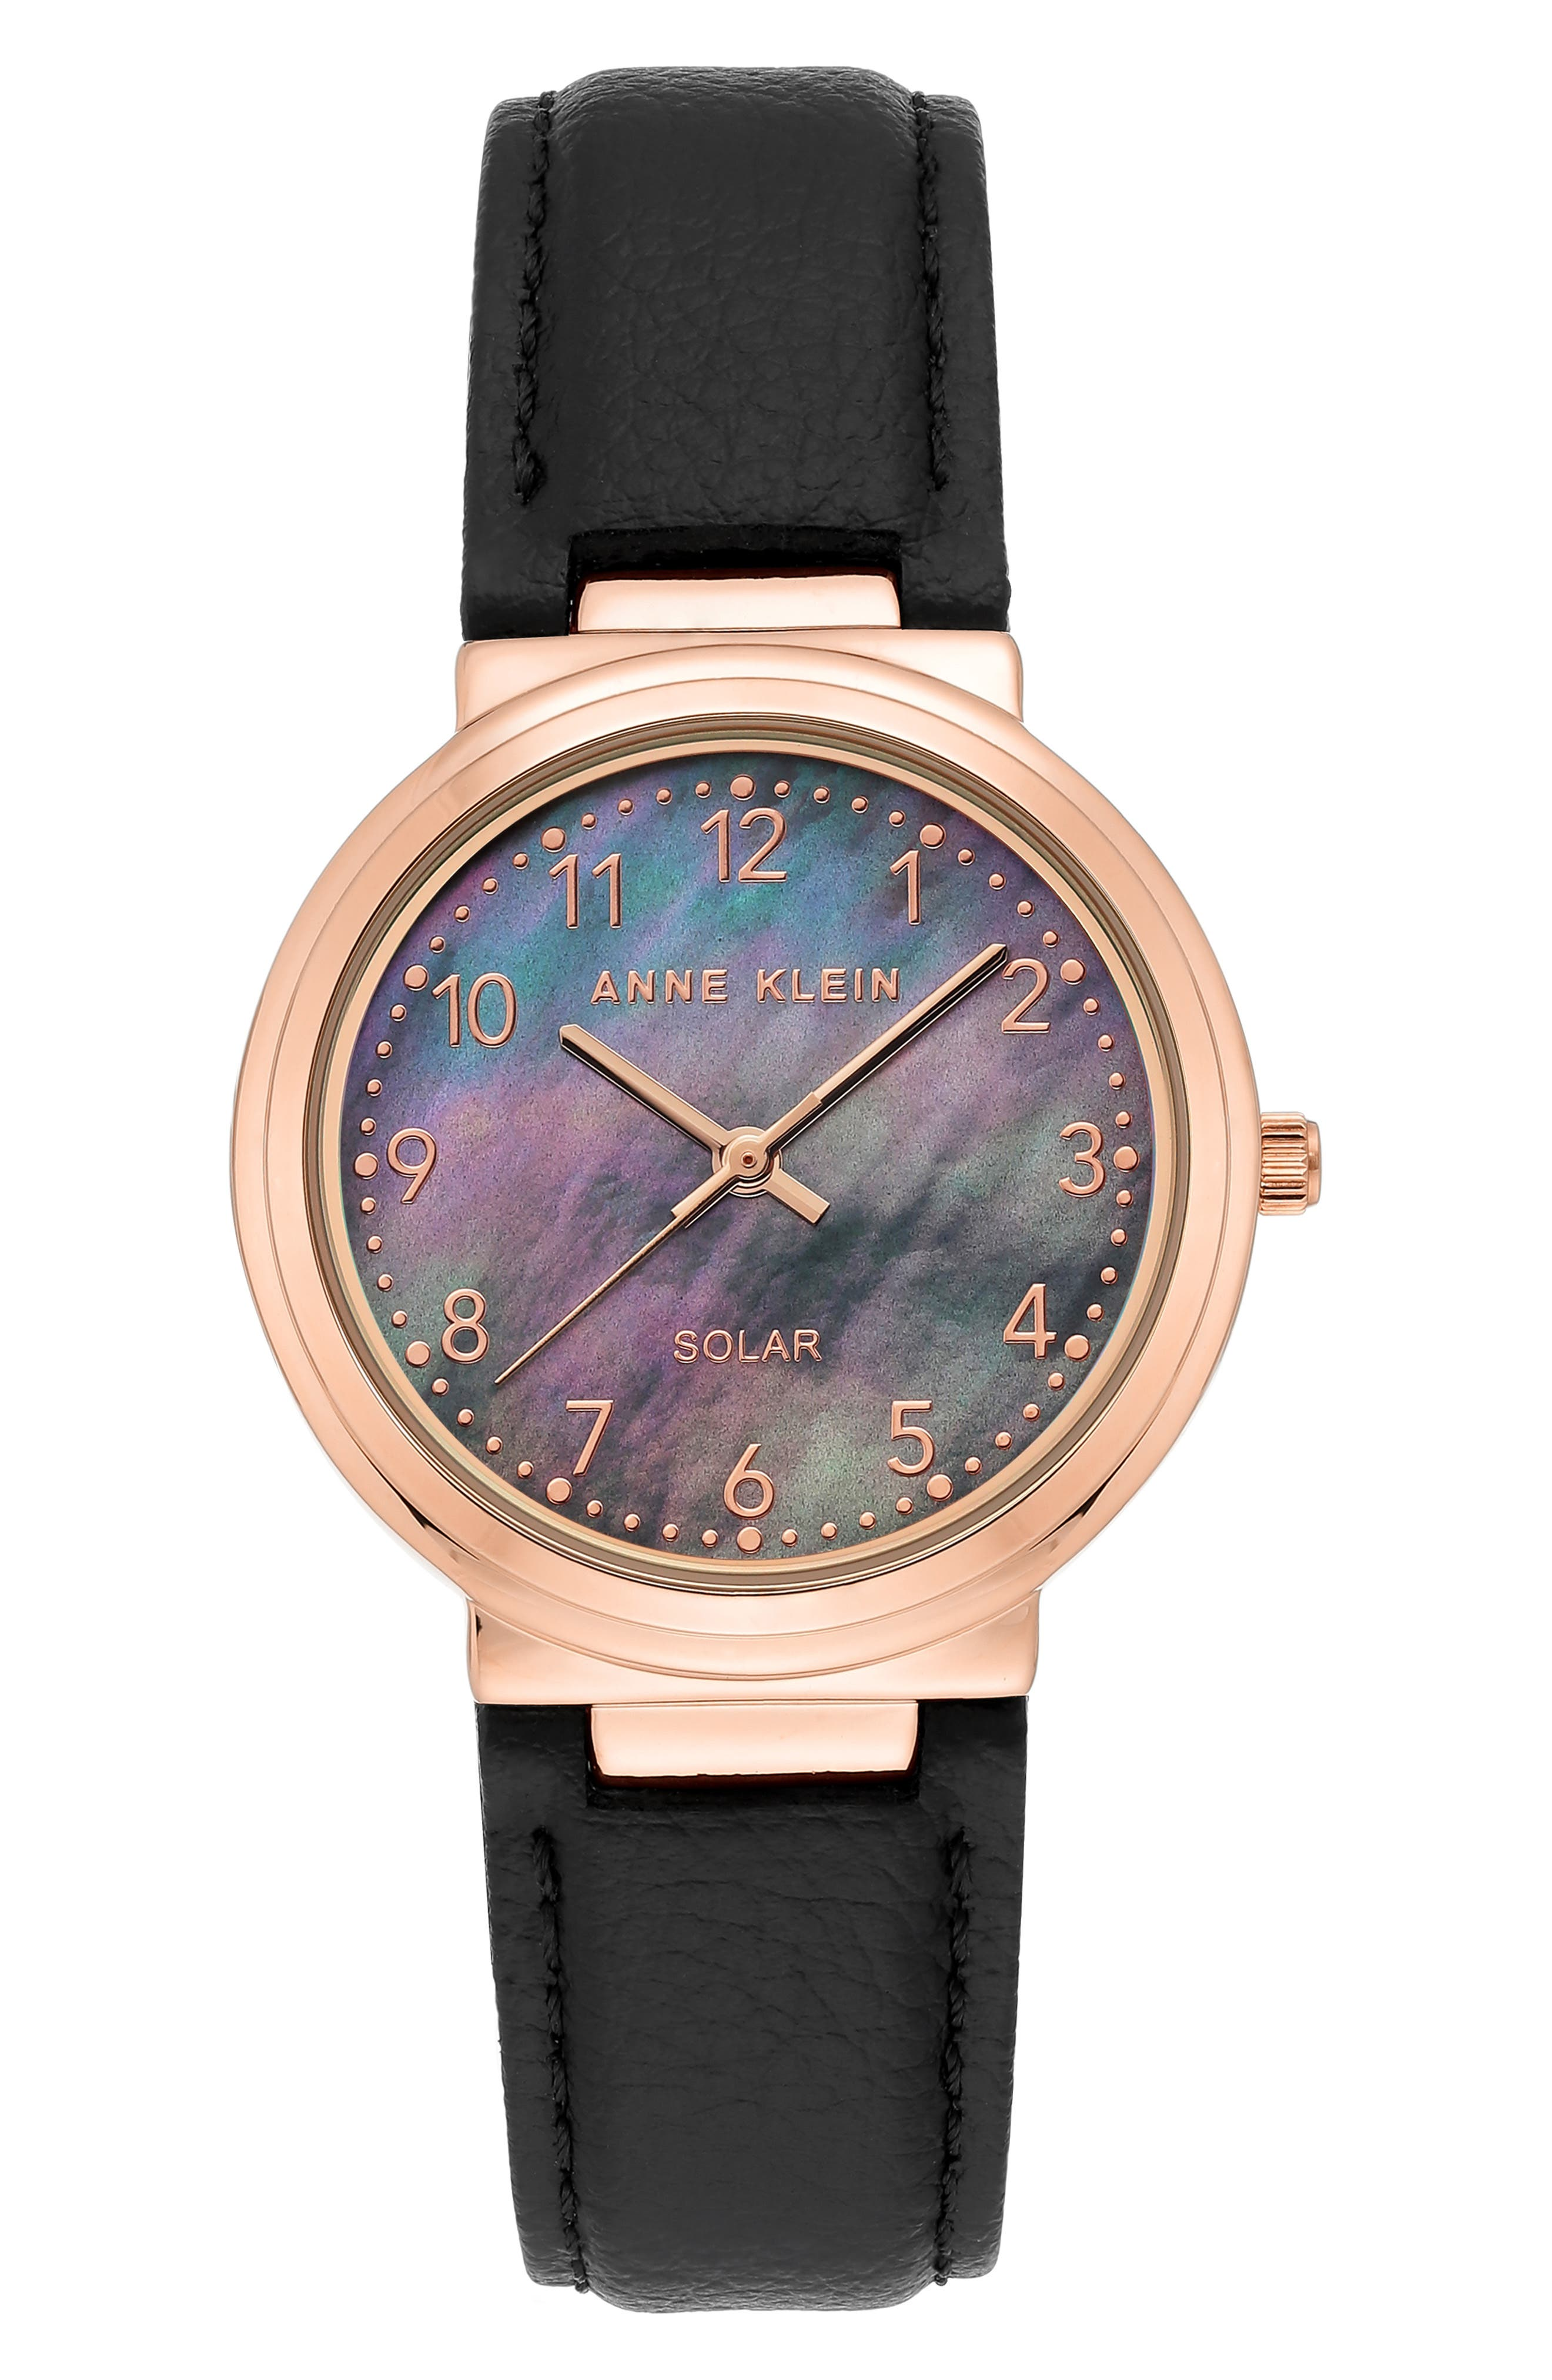 Solar Powered Leather Strap Watch